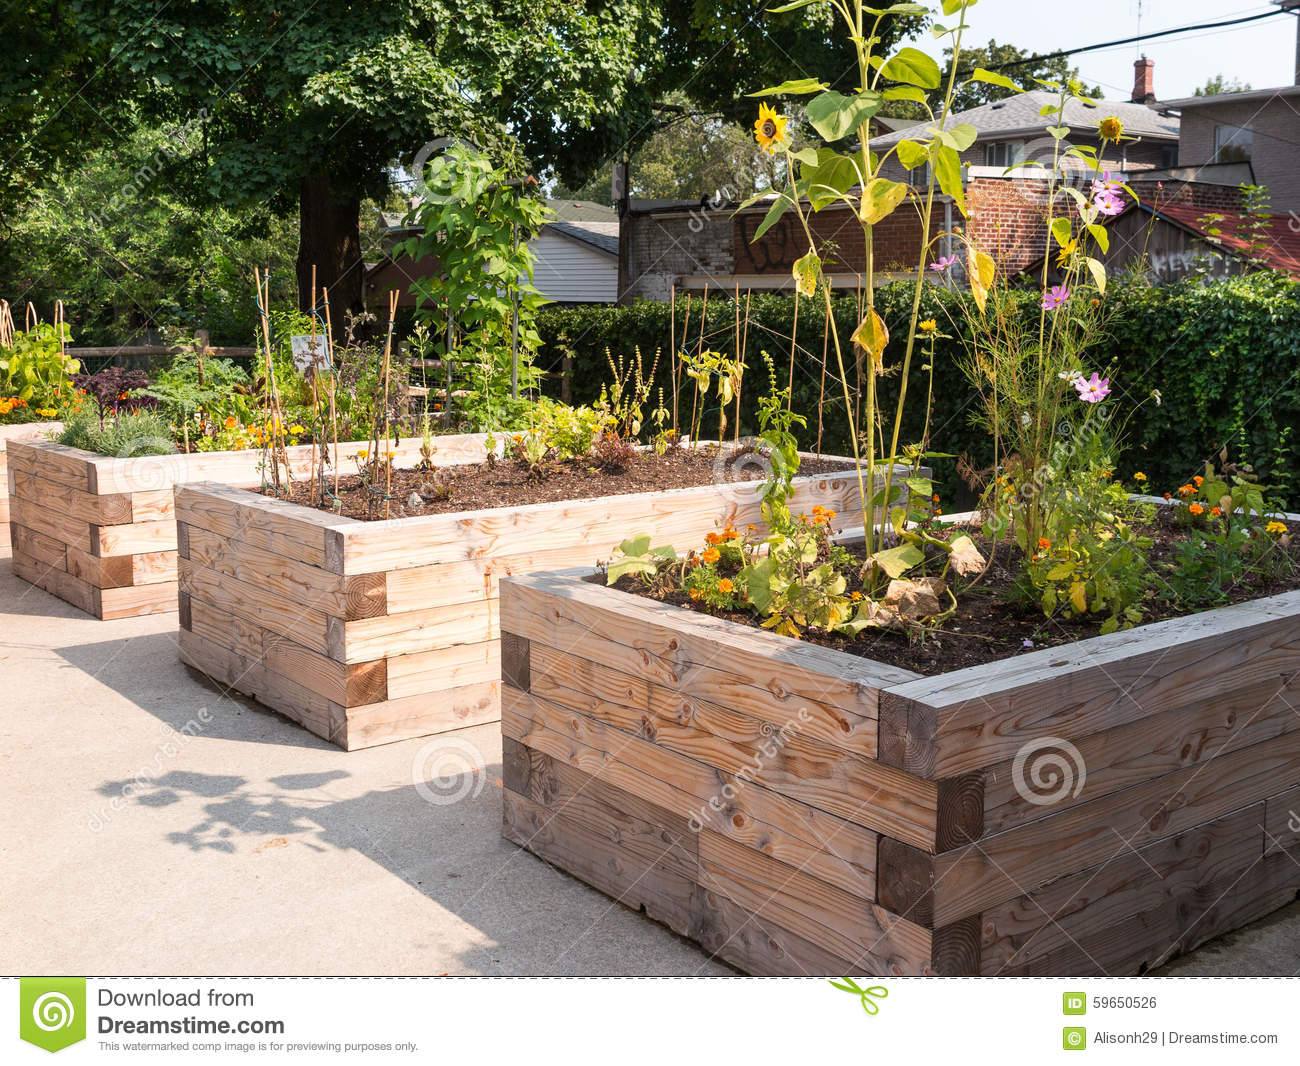 Stock Photo: Community Garden: dreamstime.com/stock-photo-community-garden-raised-beds...